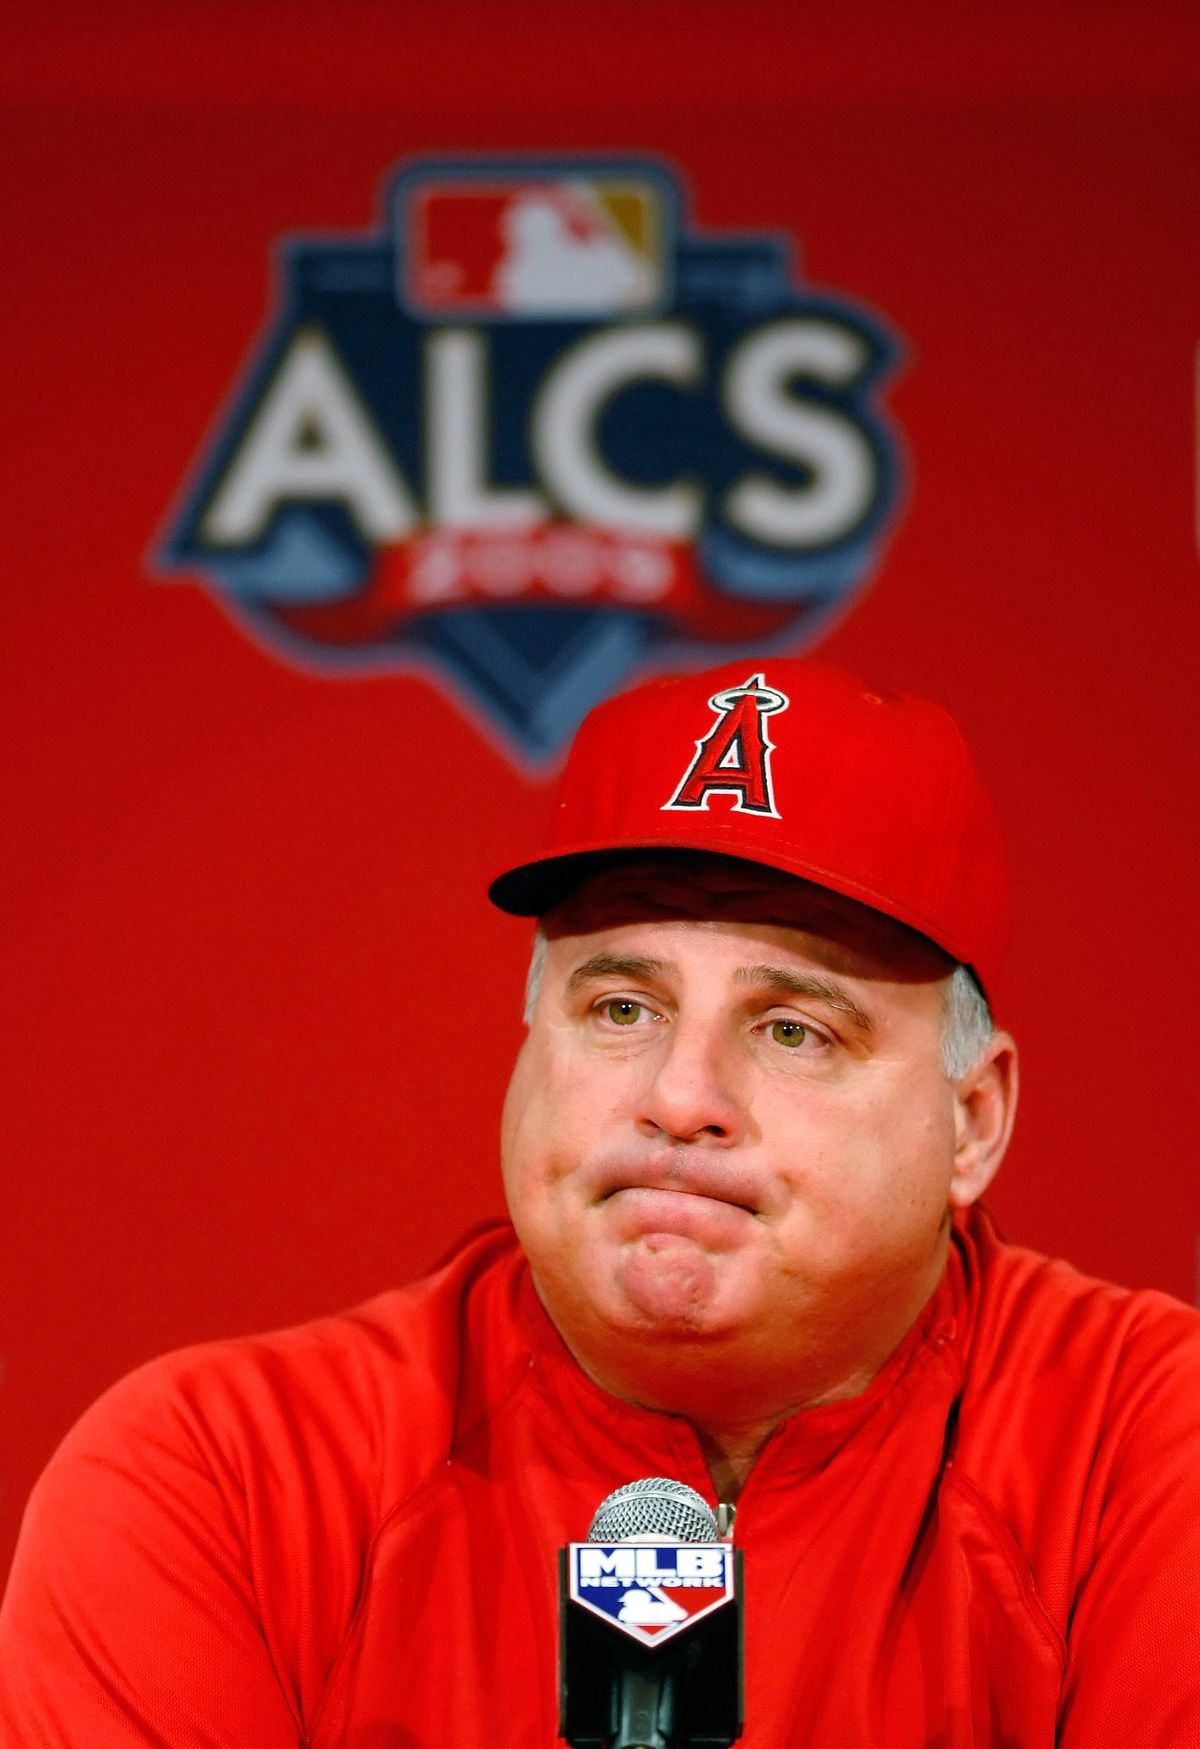 Los Angeles Angels of Anaheim Off-day